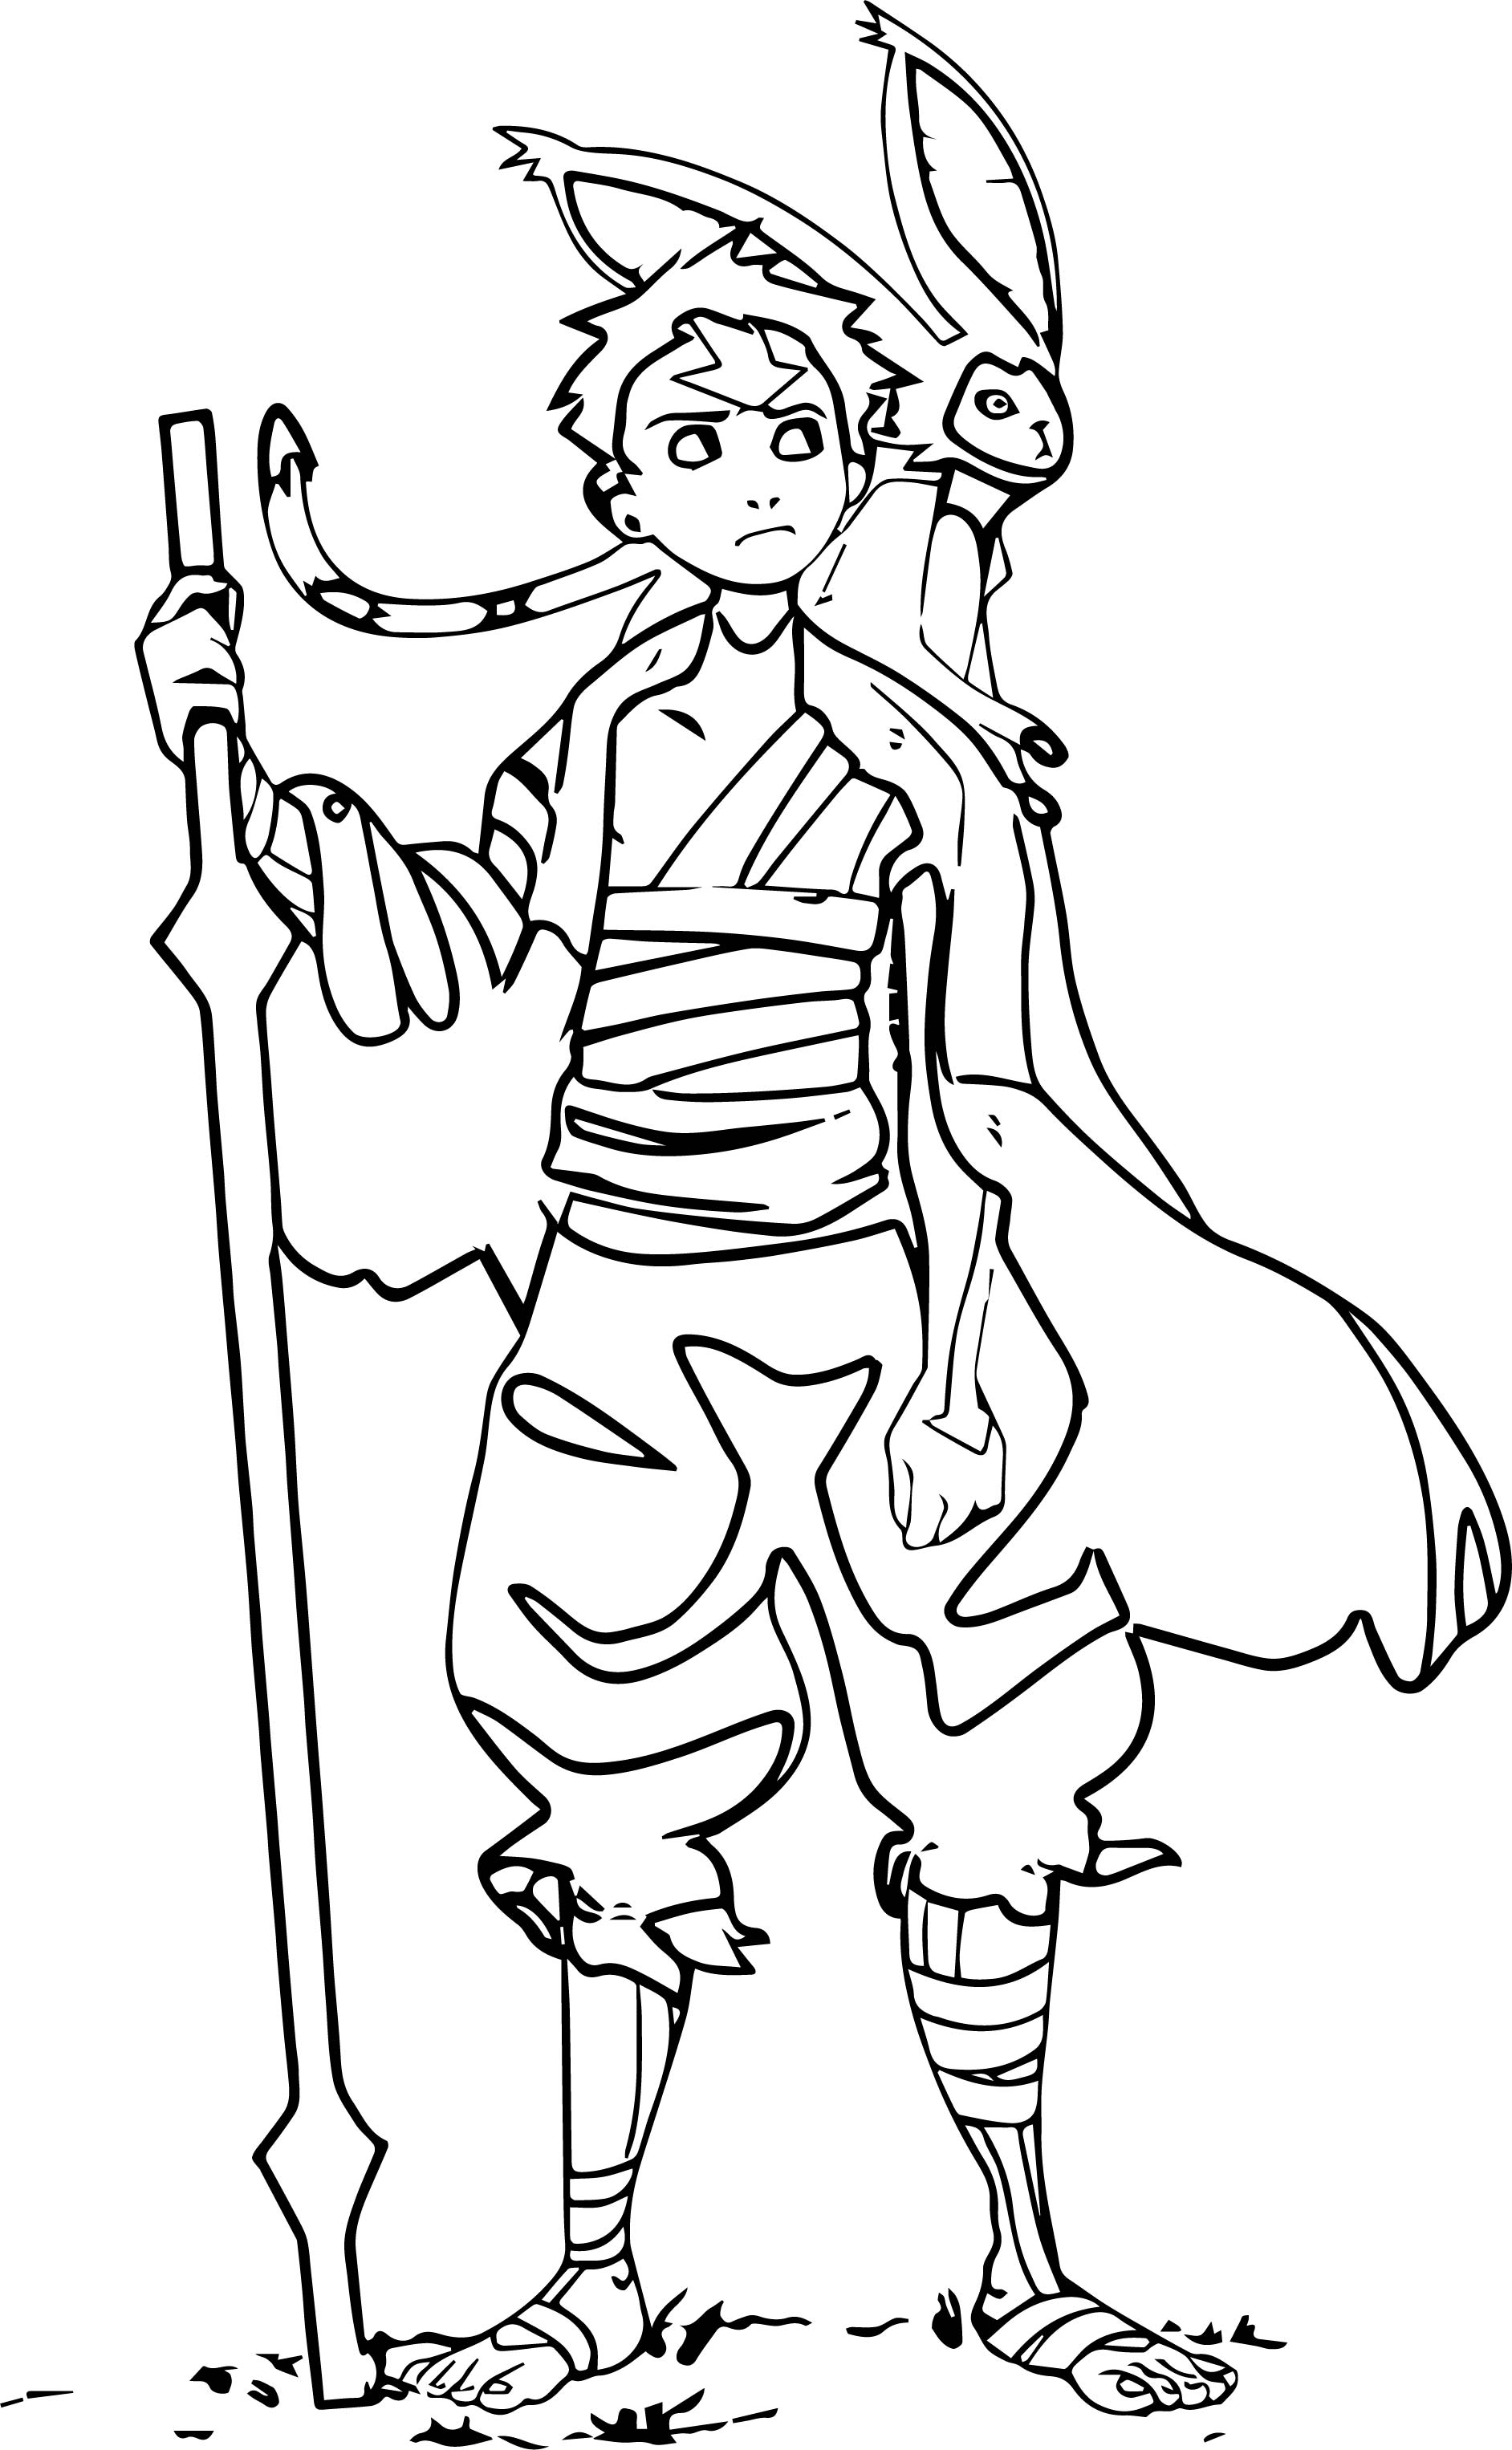 Aang Is Ready Avatar Aang Coloring Page